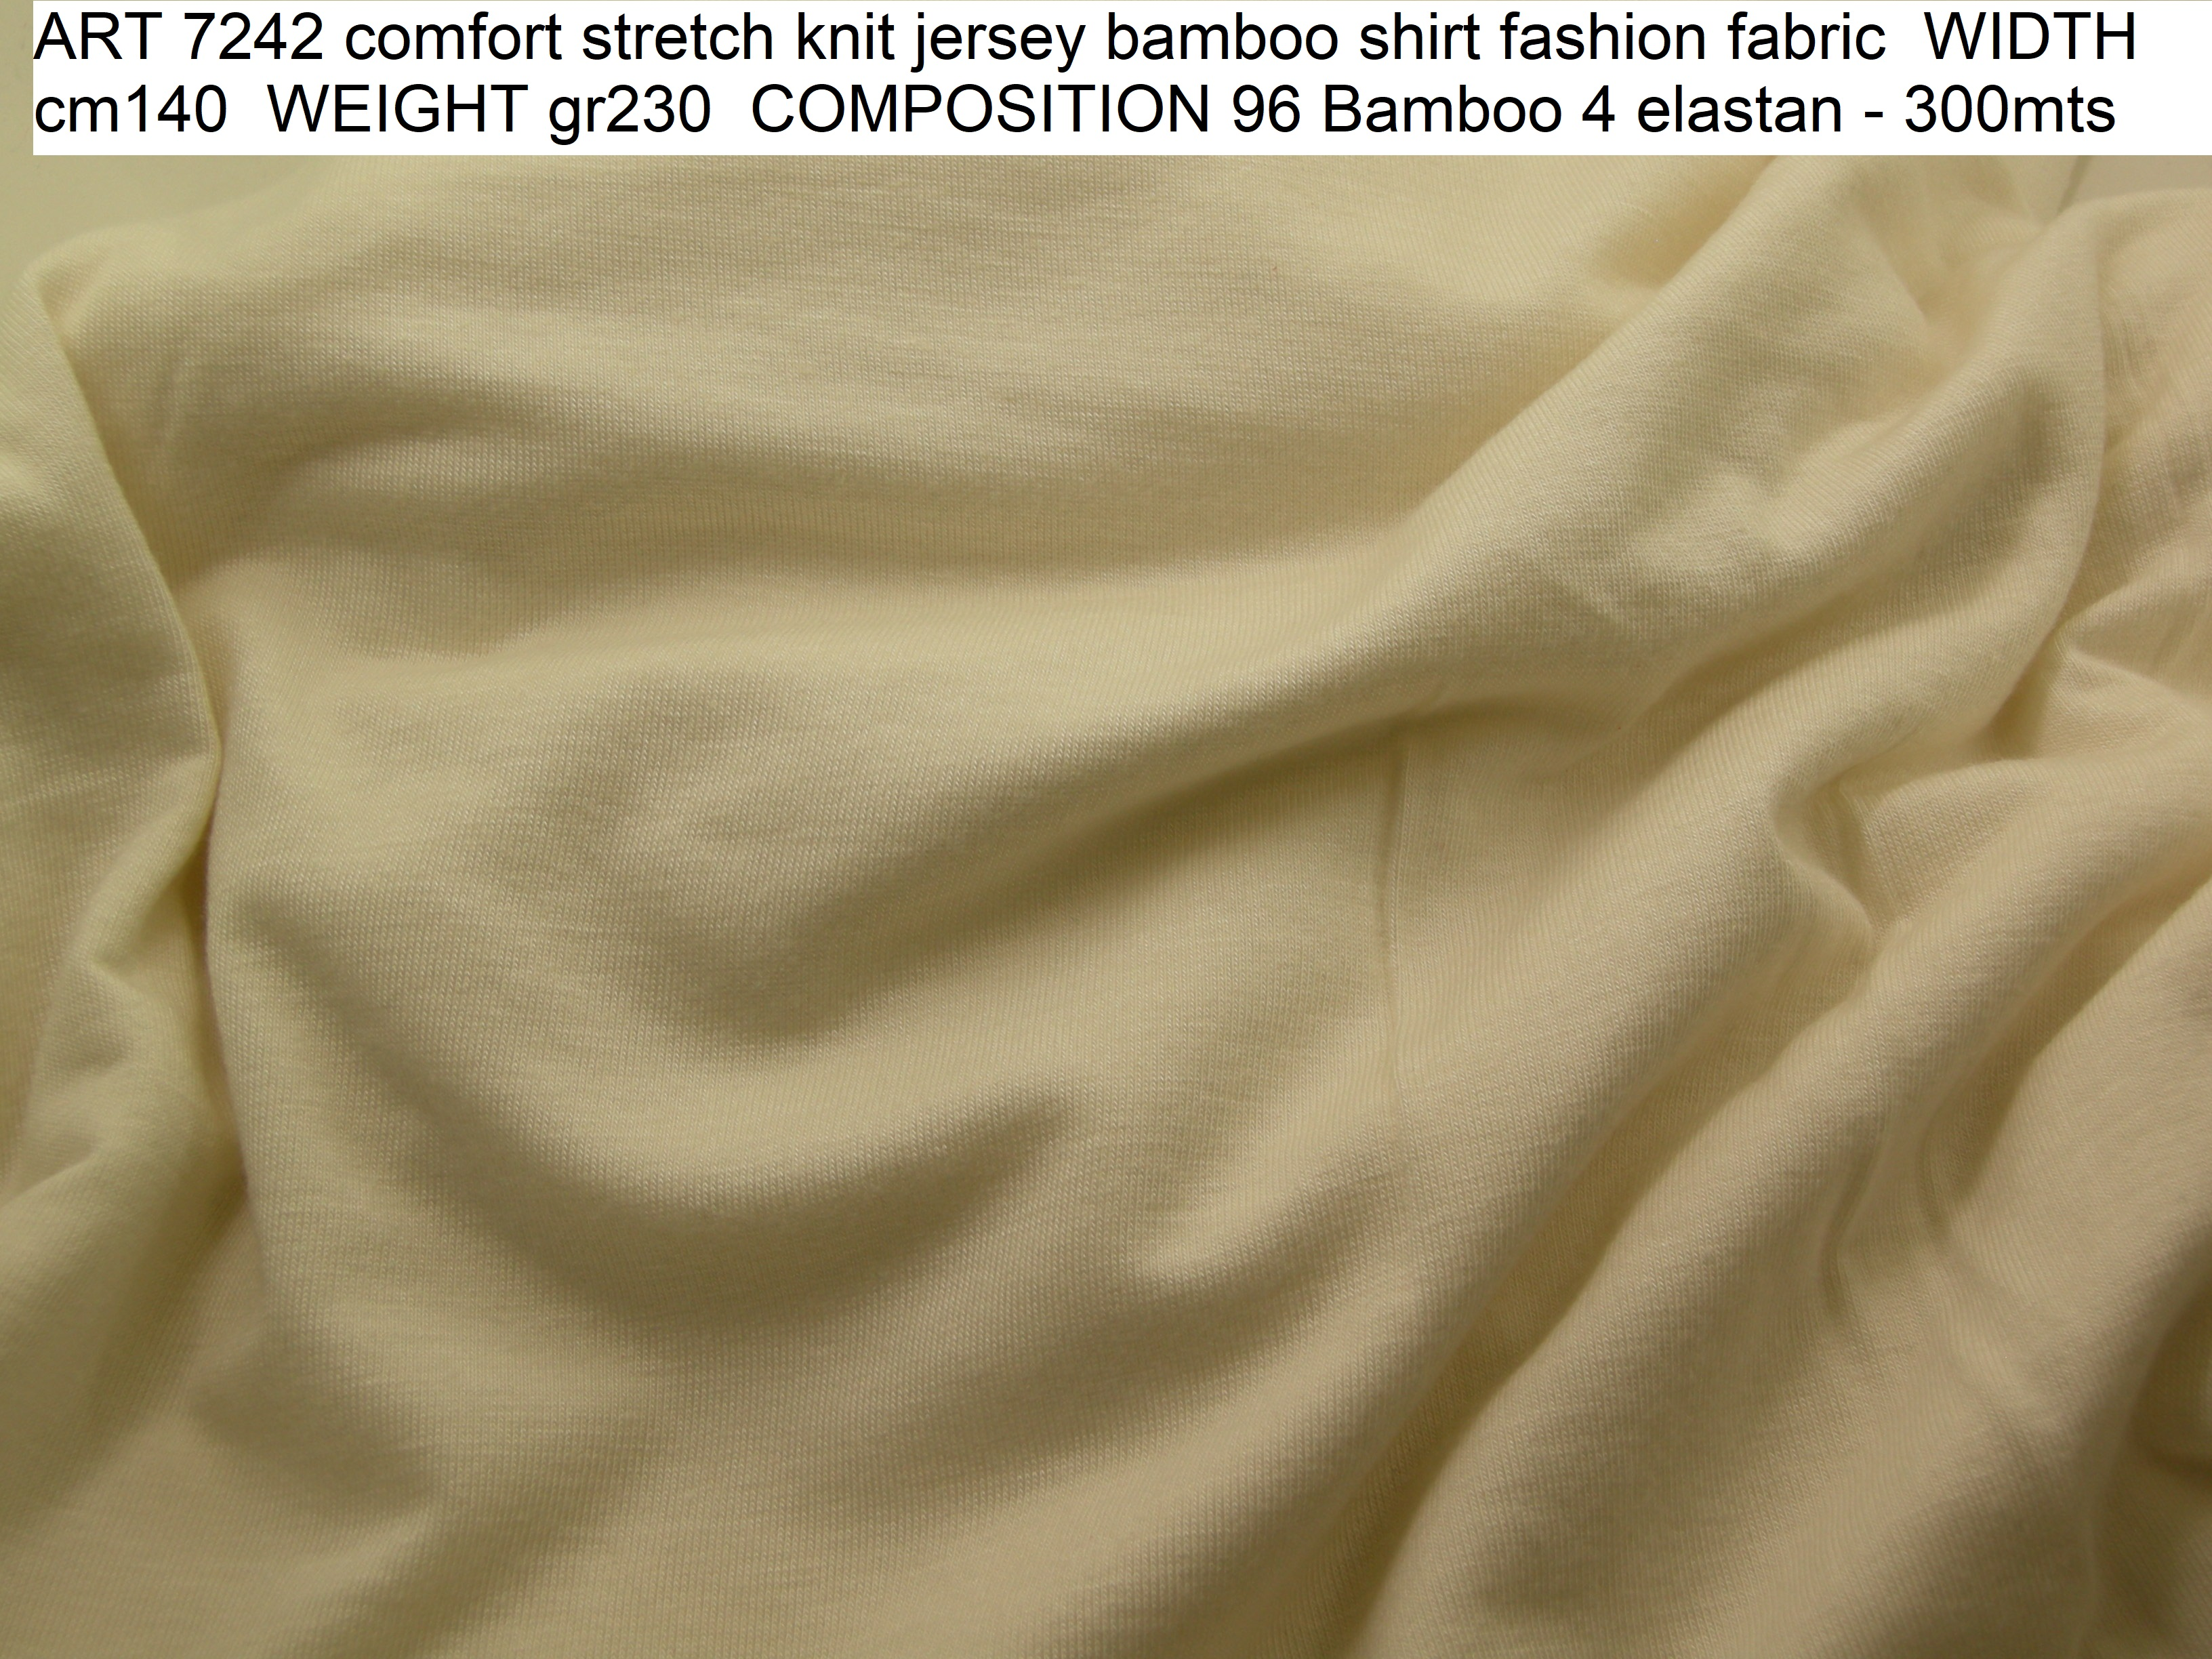 ART 7242 comfort stretch knit jersey bamboo shirt fashion fabric WIDTH cm140 WEIGHT gr230 COMPOSITION 96 Bamboo 4 elastan - 300mts